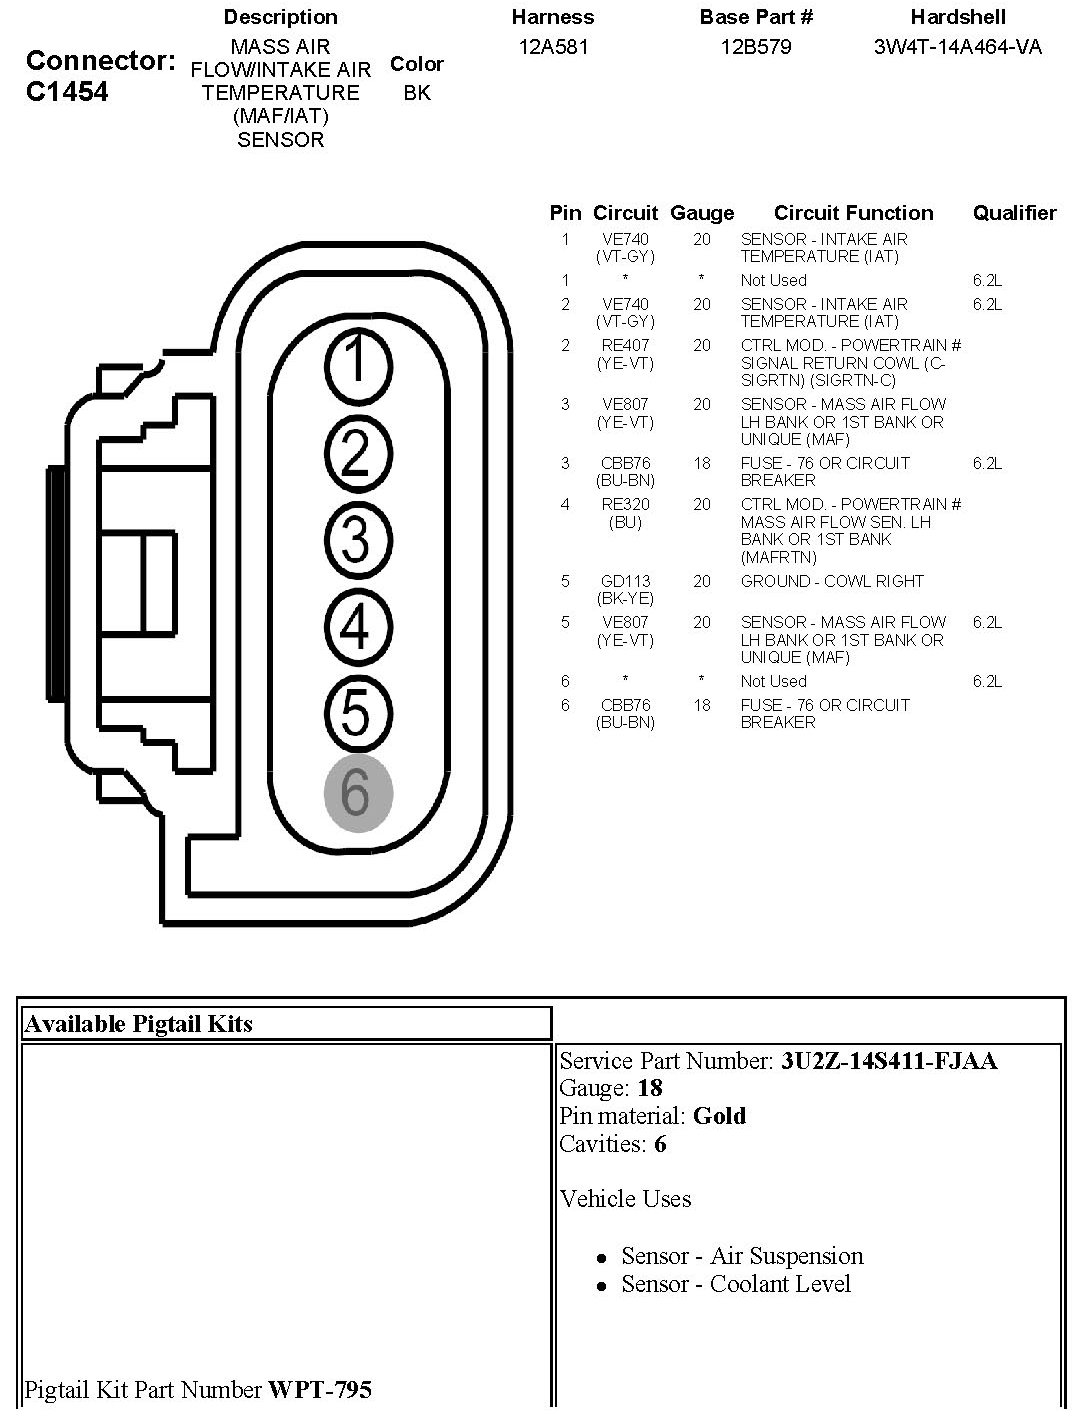 Ford f 150 iat wiring diagram wire center on a 2010 f150 5 4l if a performance chip is attached to pin 1 rh justanswer com 1989 ford f 150 wiring diagram 2013 ford f 150 wiring diagram fandeluxe Gallery